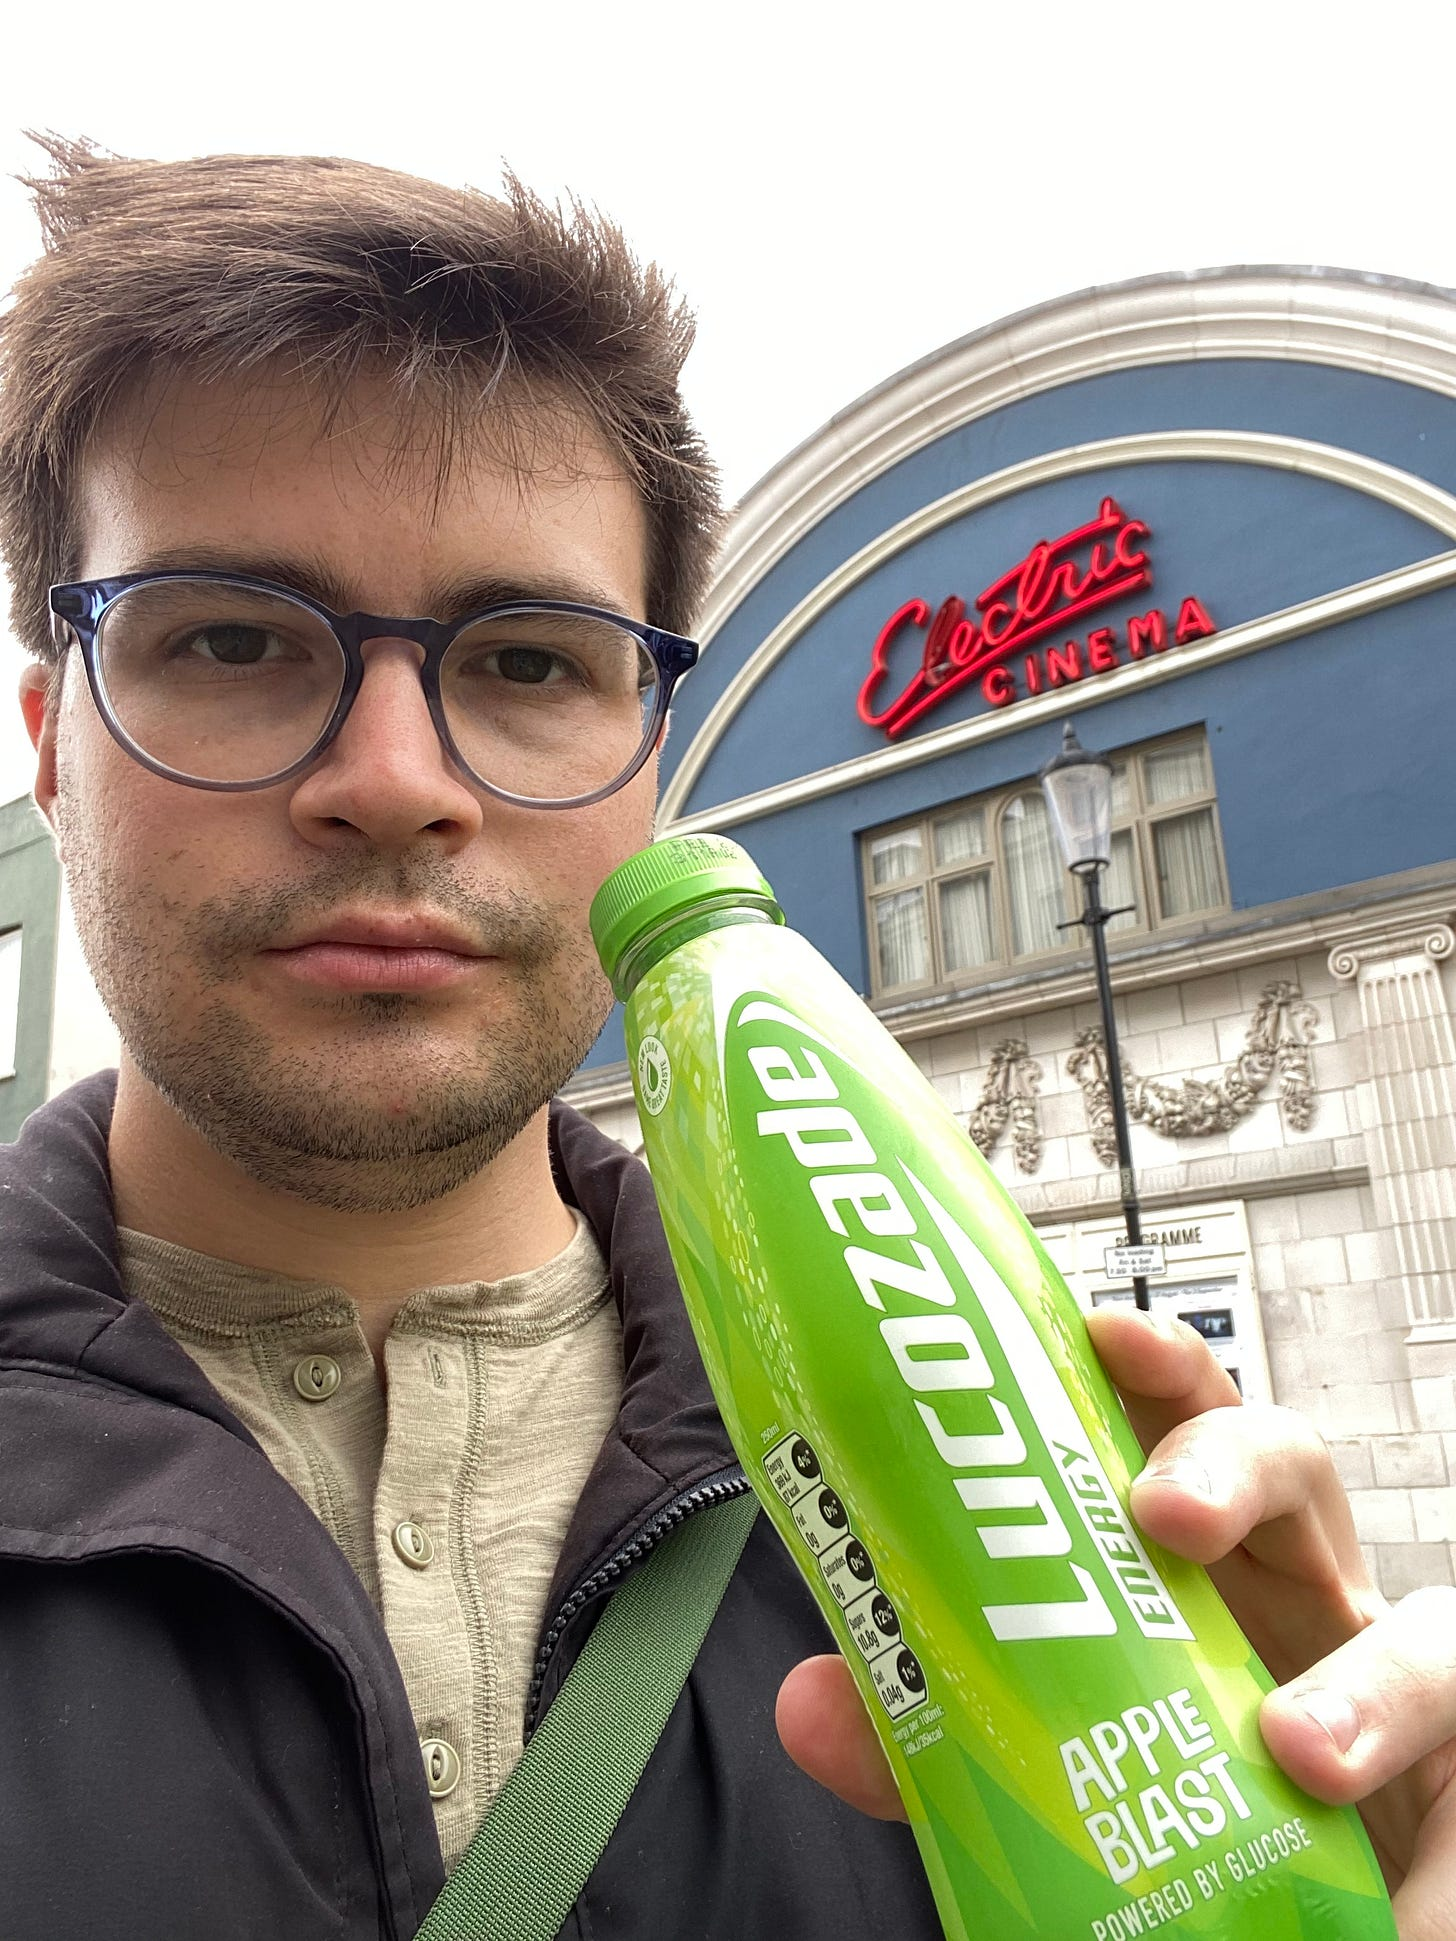 The author standing with a Lucozade Apple Blast in front of Electric Cinema, a movie theater in Notting Hill.